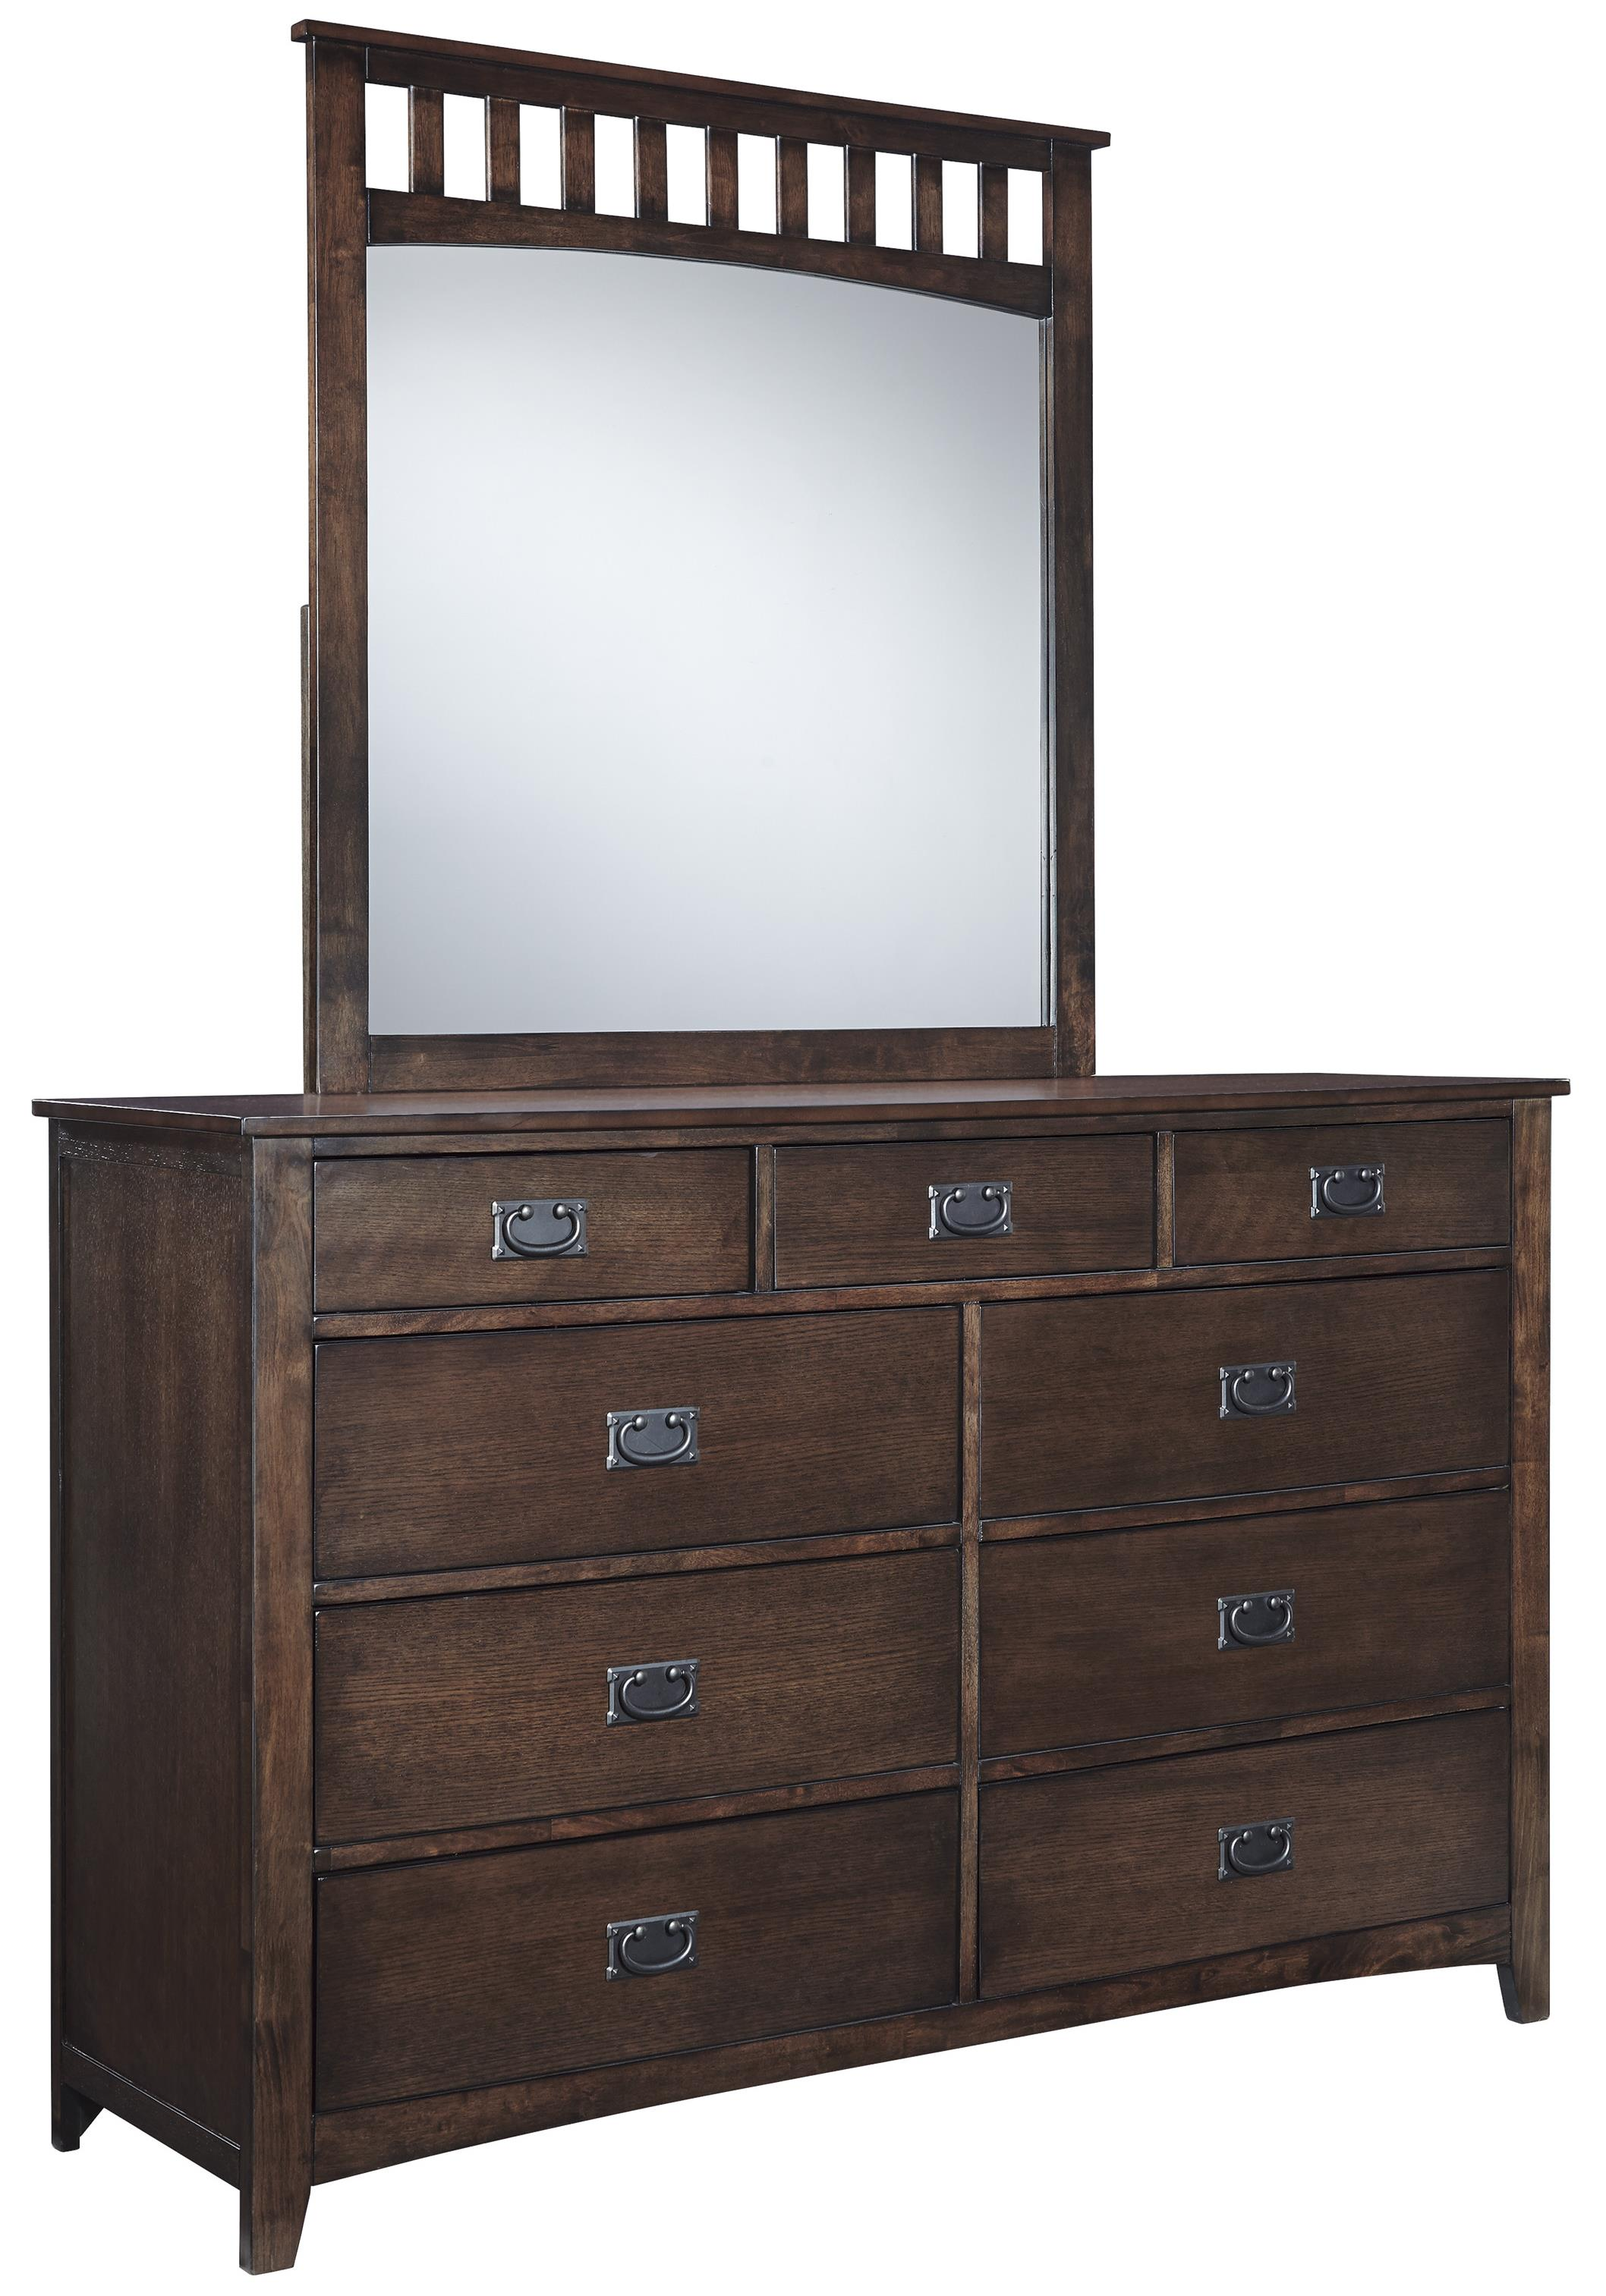 Signature Design by Ashley Strenton Dresser and Mirror - Item Number: B568-31+36